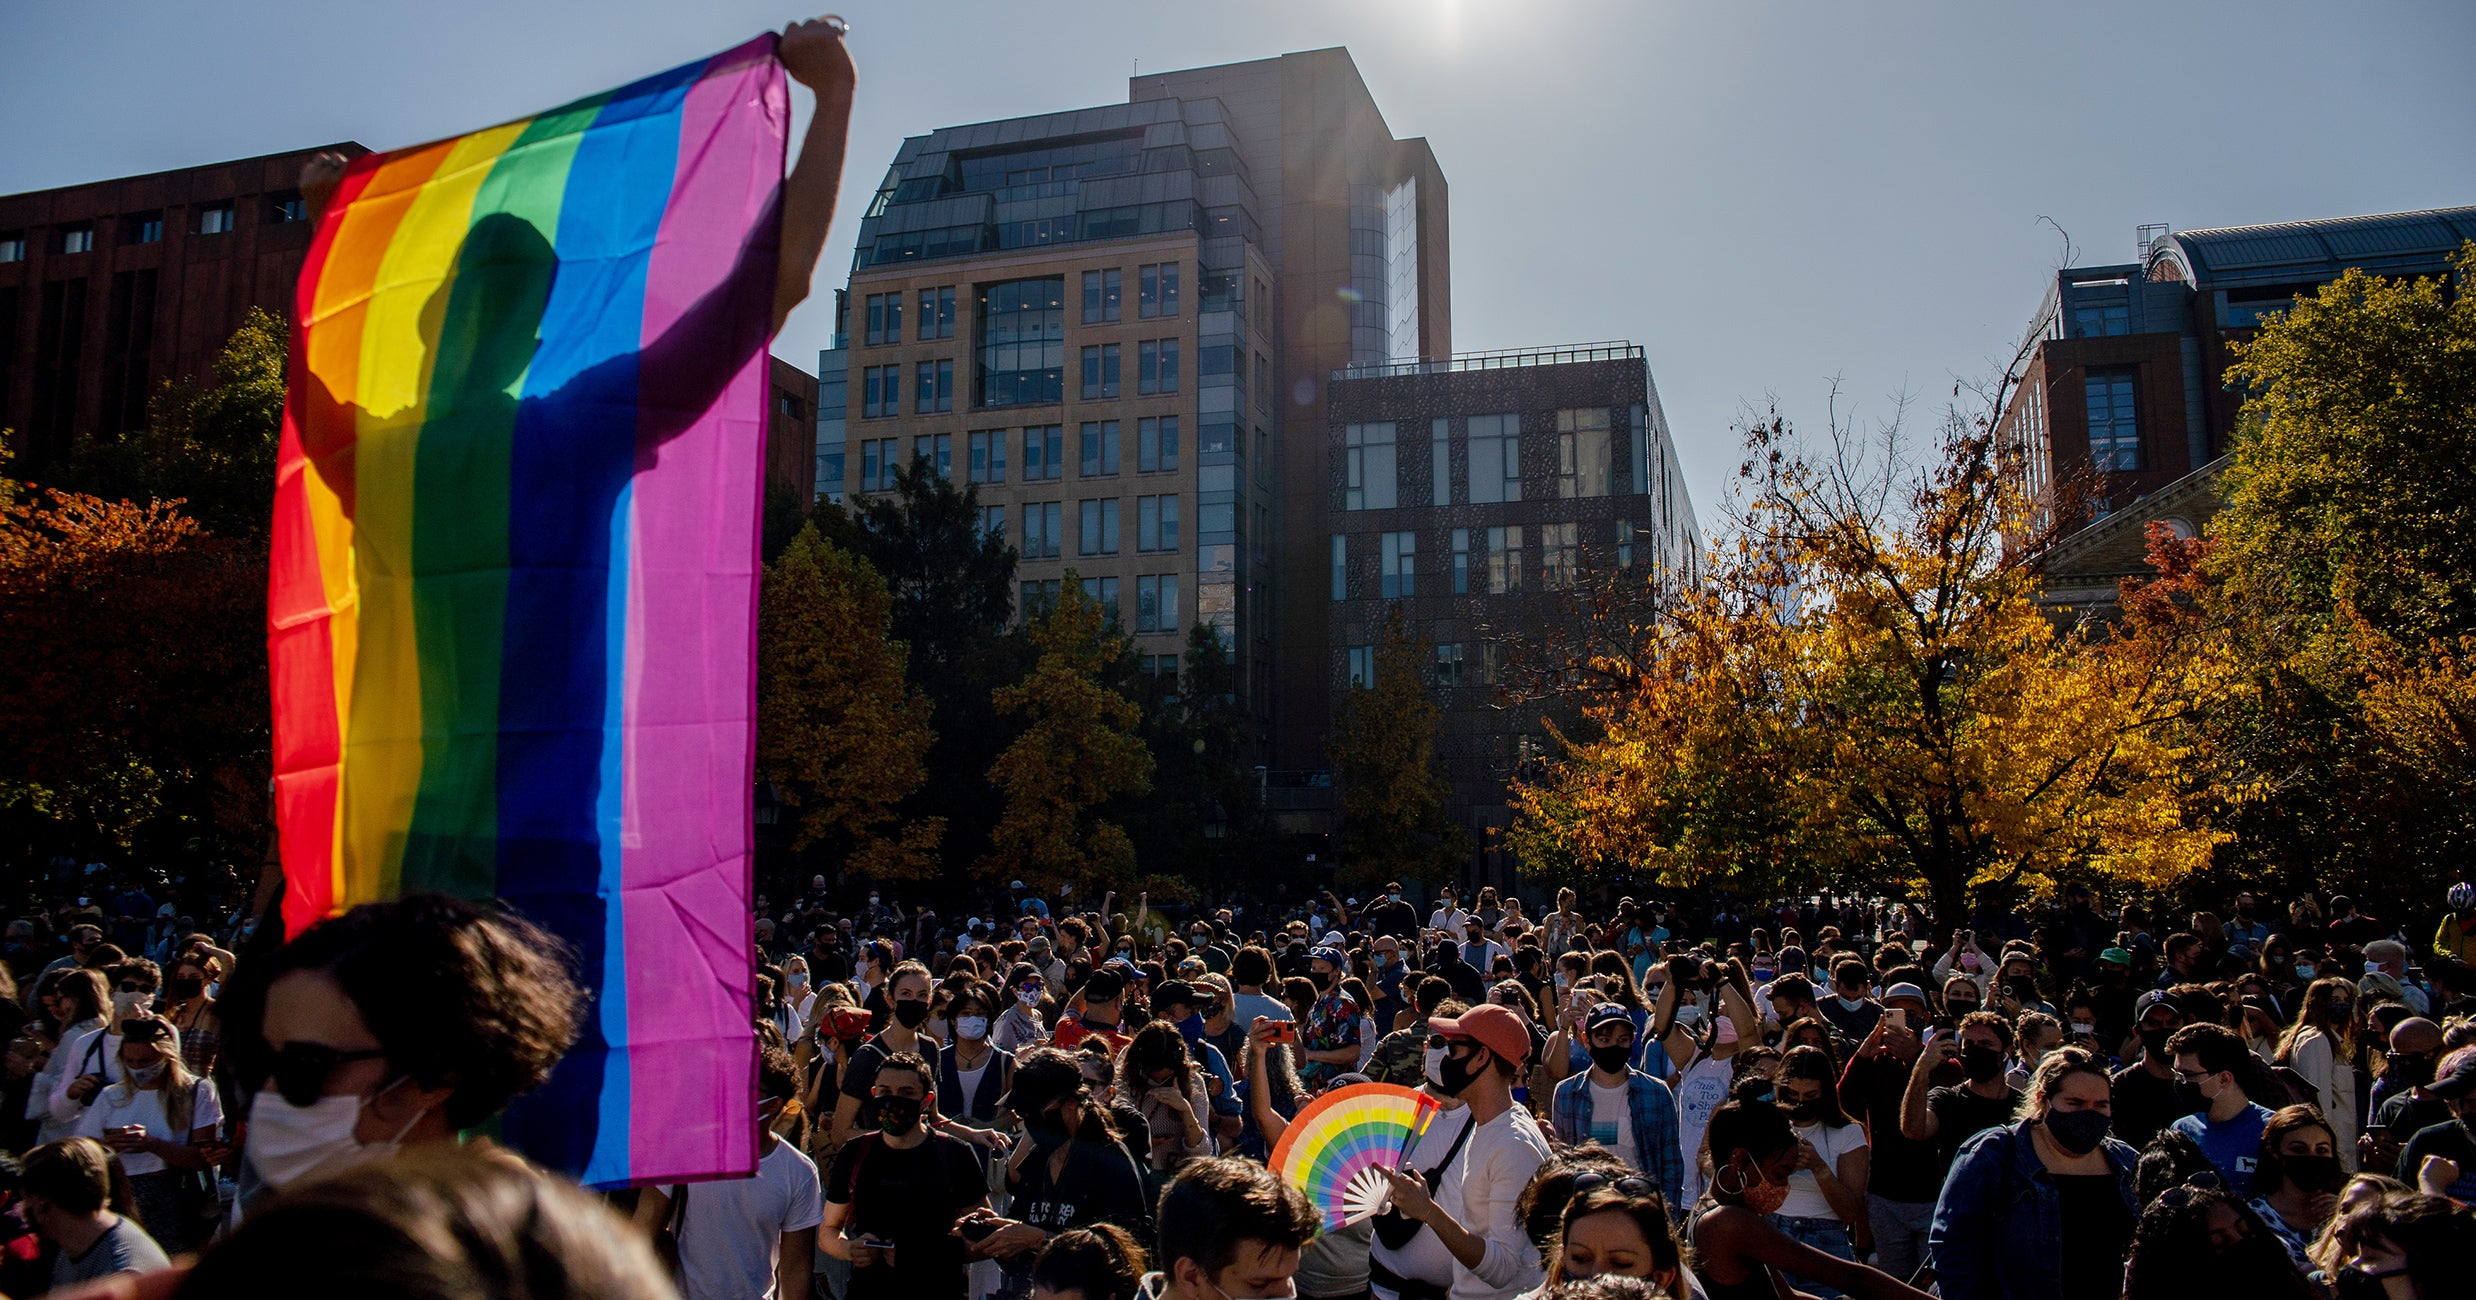 www.refinery29.com: The Equality Act Promises The Most LGBTQ+ Protections In U.S. History — Here's How